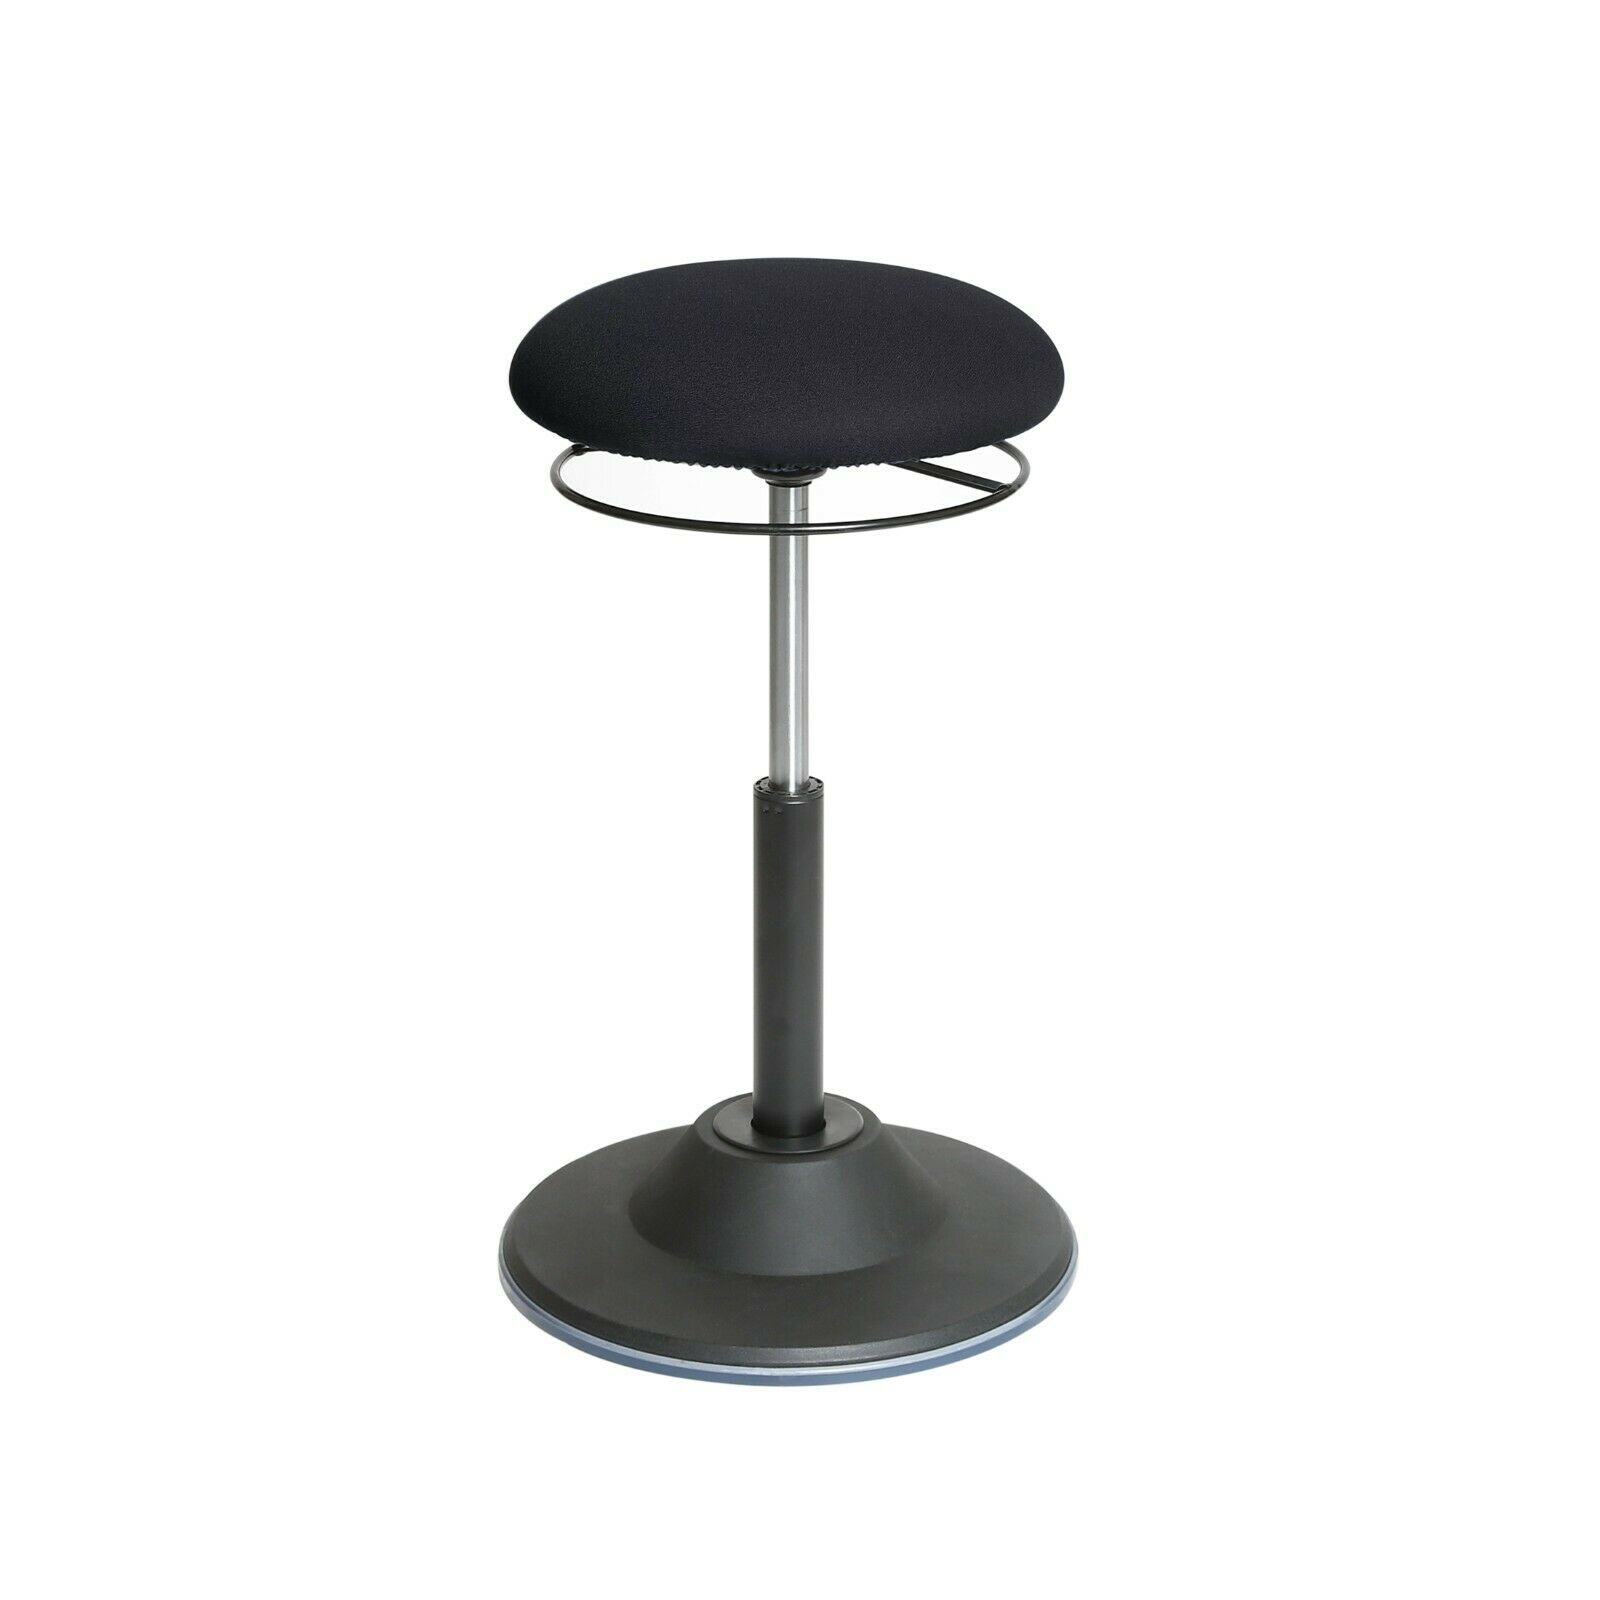 360 SIT-STAND ADJUSTABLE ERGONOMIC ACTIVE BALANCE STOOL Business & Industrial